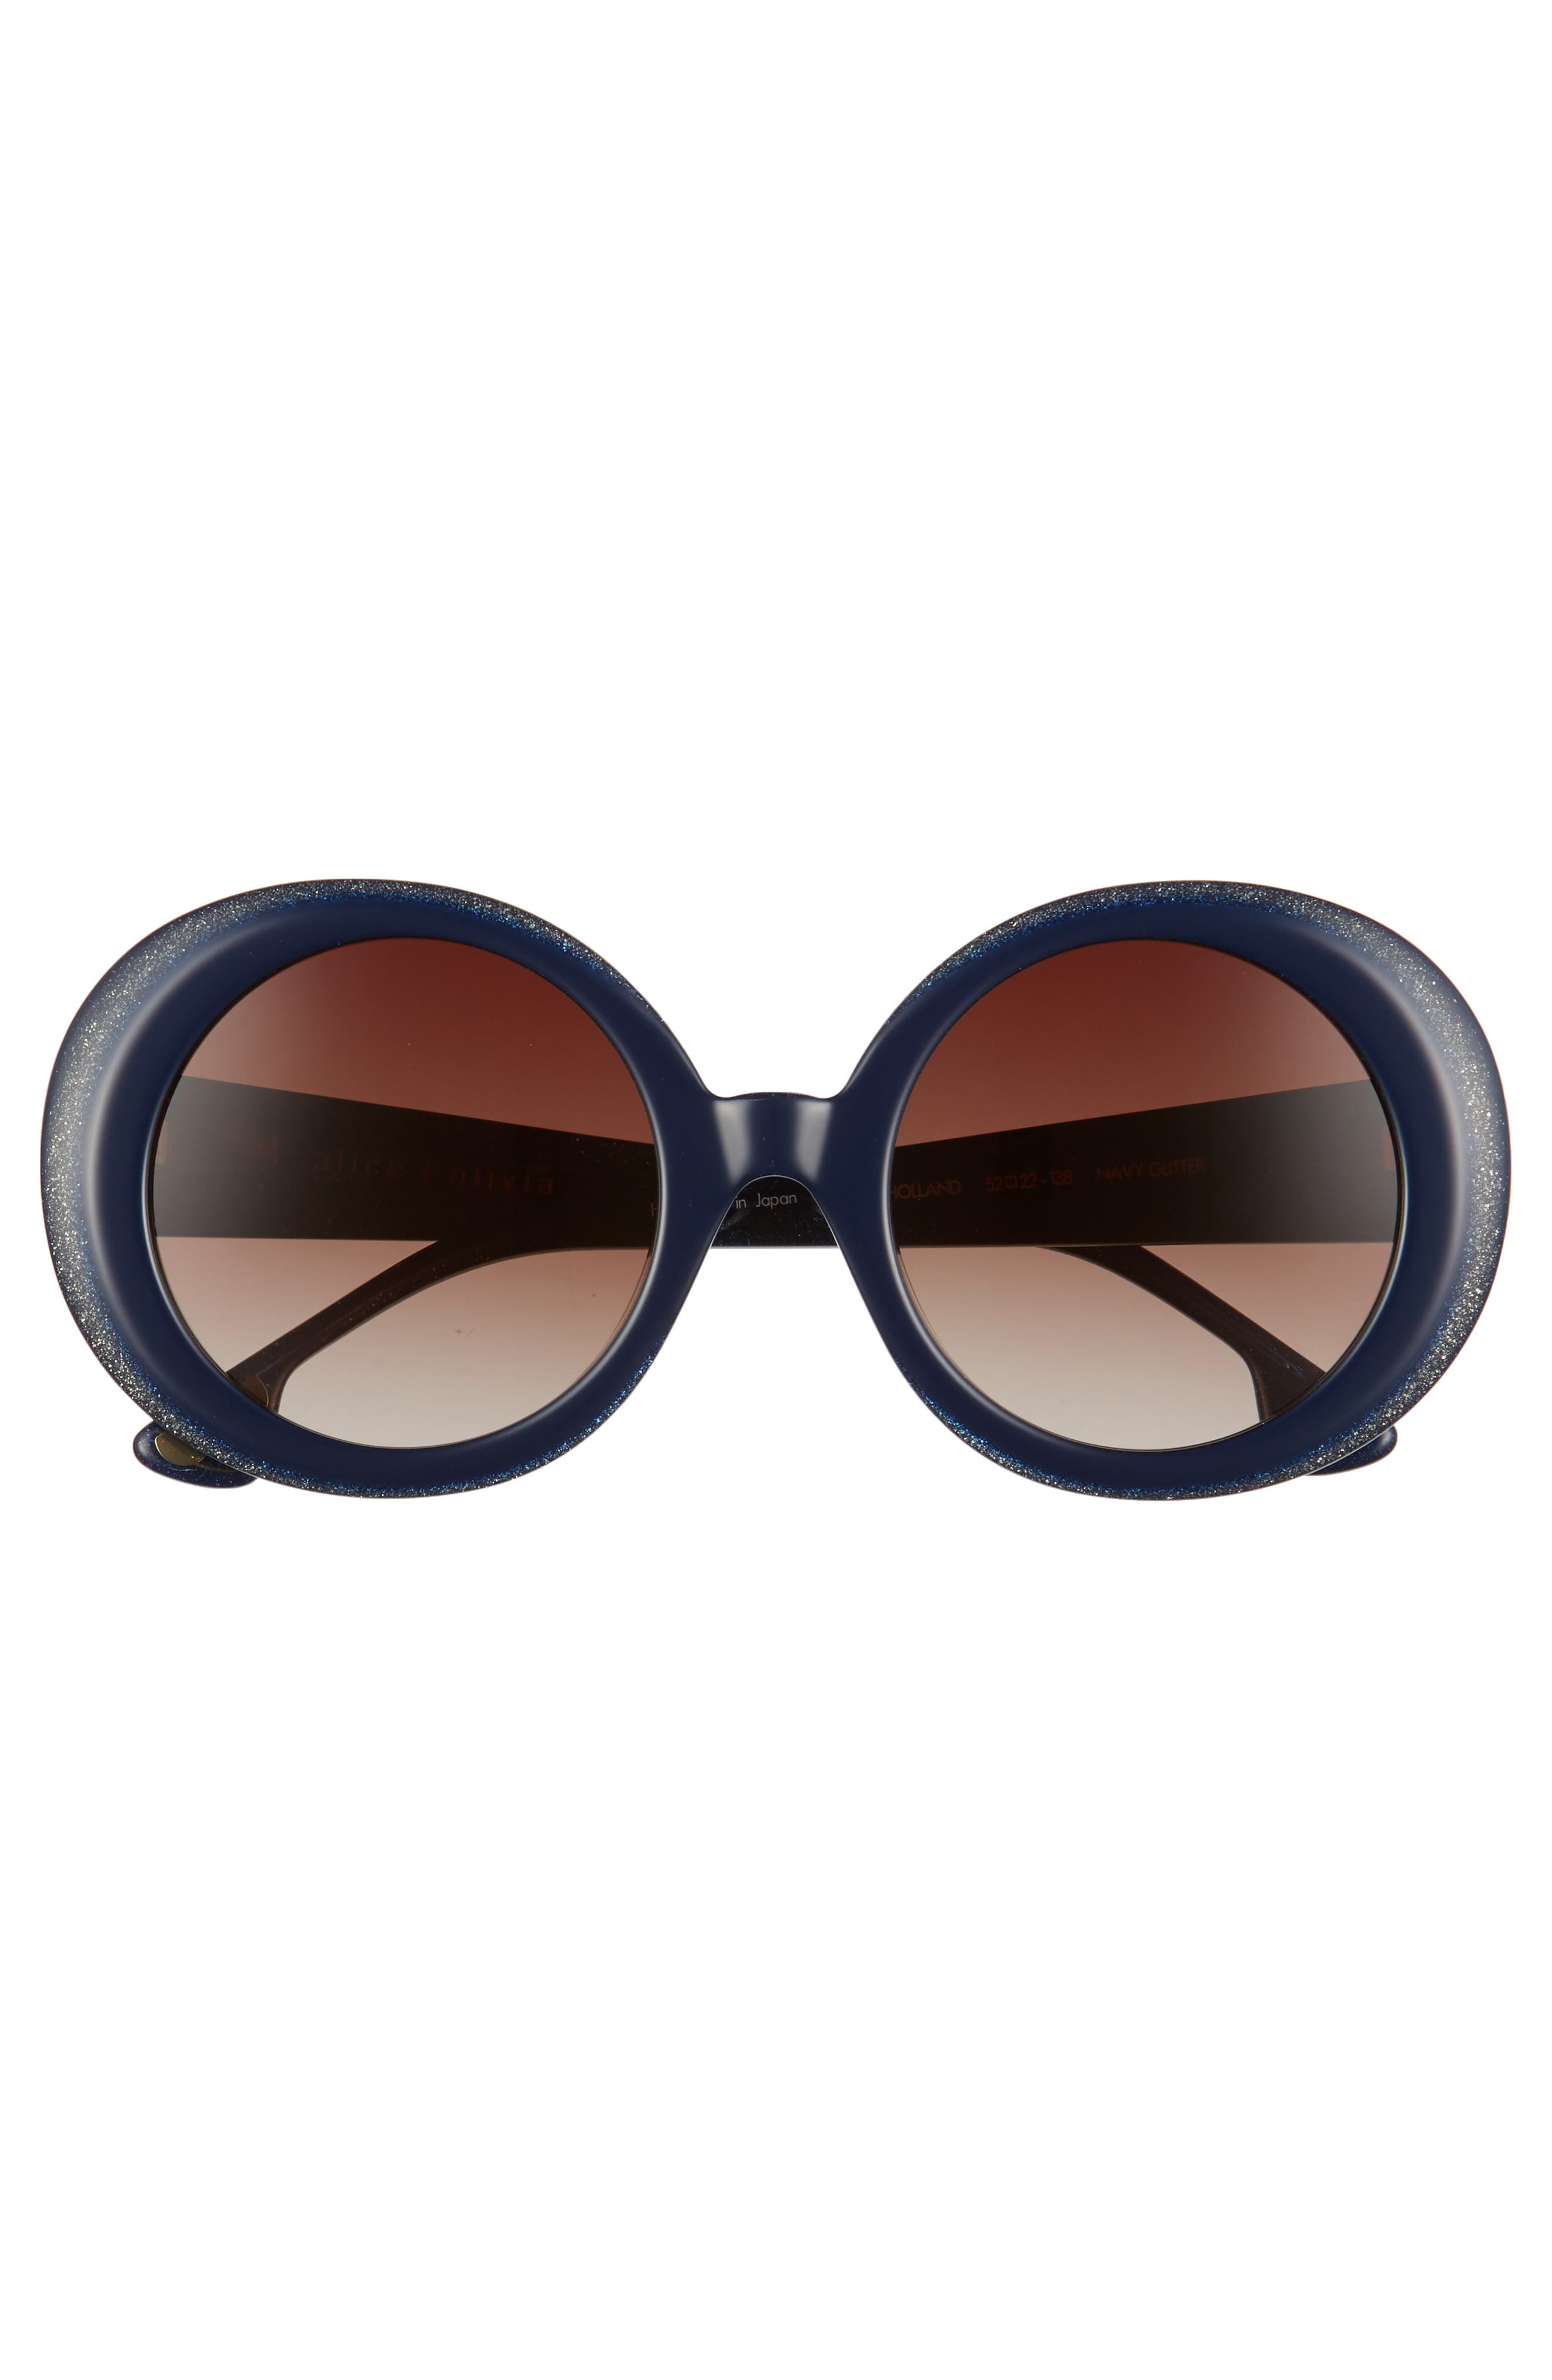 Mulholland 52mm Round Gradient Sunglasses,                             Alternate thumbnail 5, color,